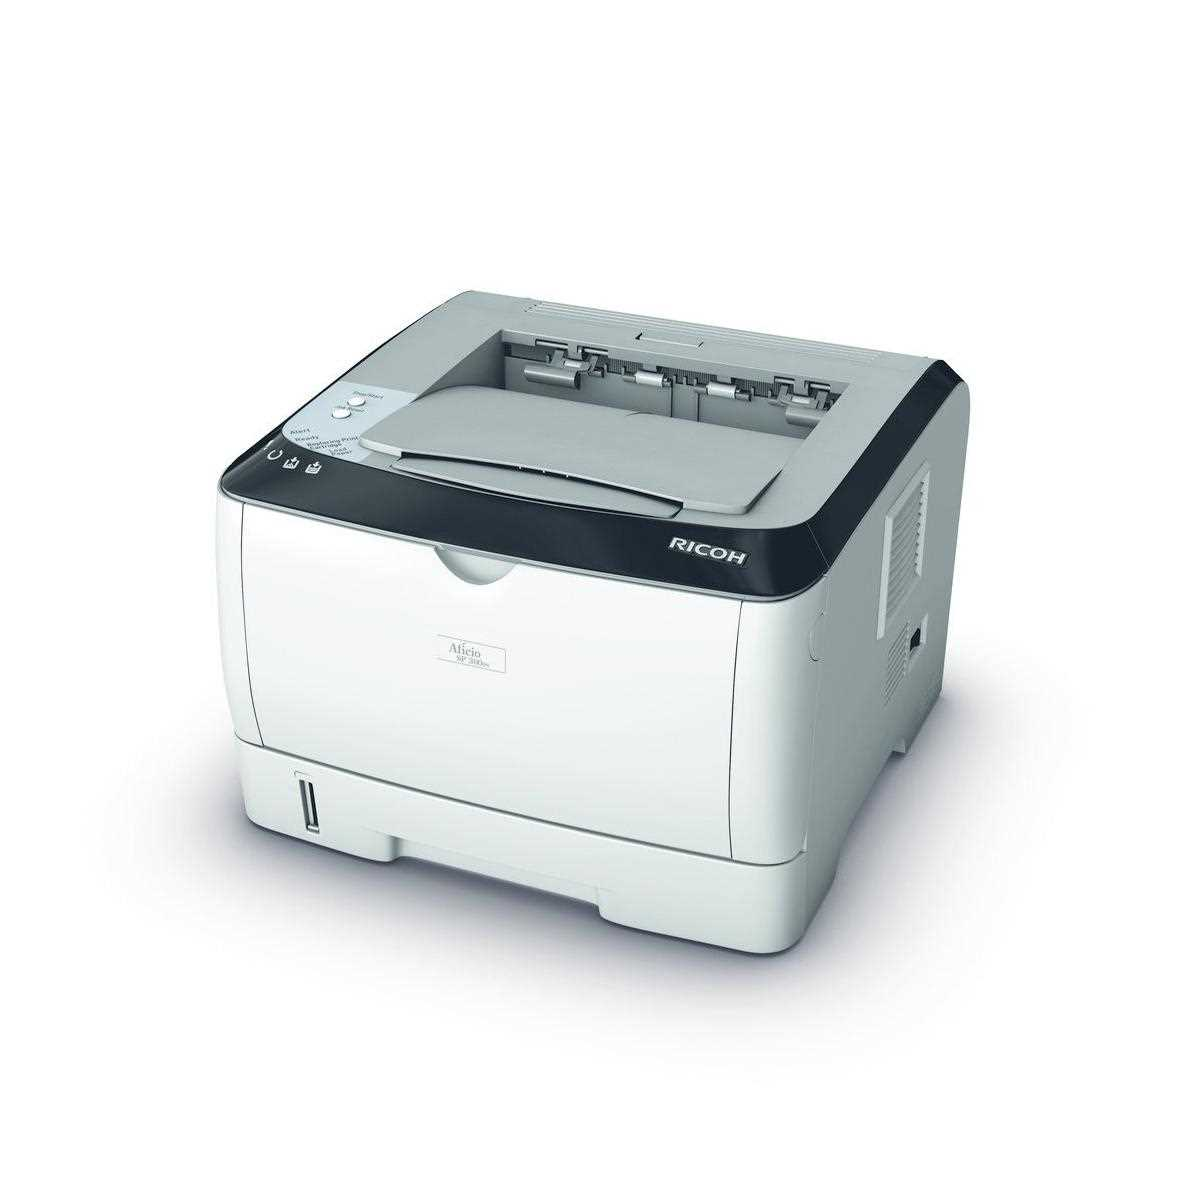 Ricoh Printer Price List {12 Aug 2019} | Latest Ricoh Printers in India